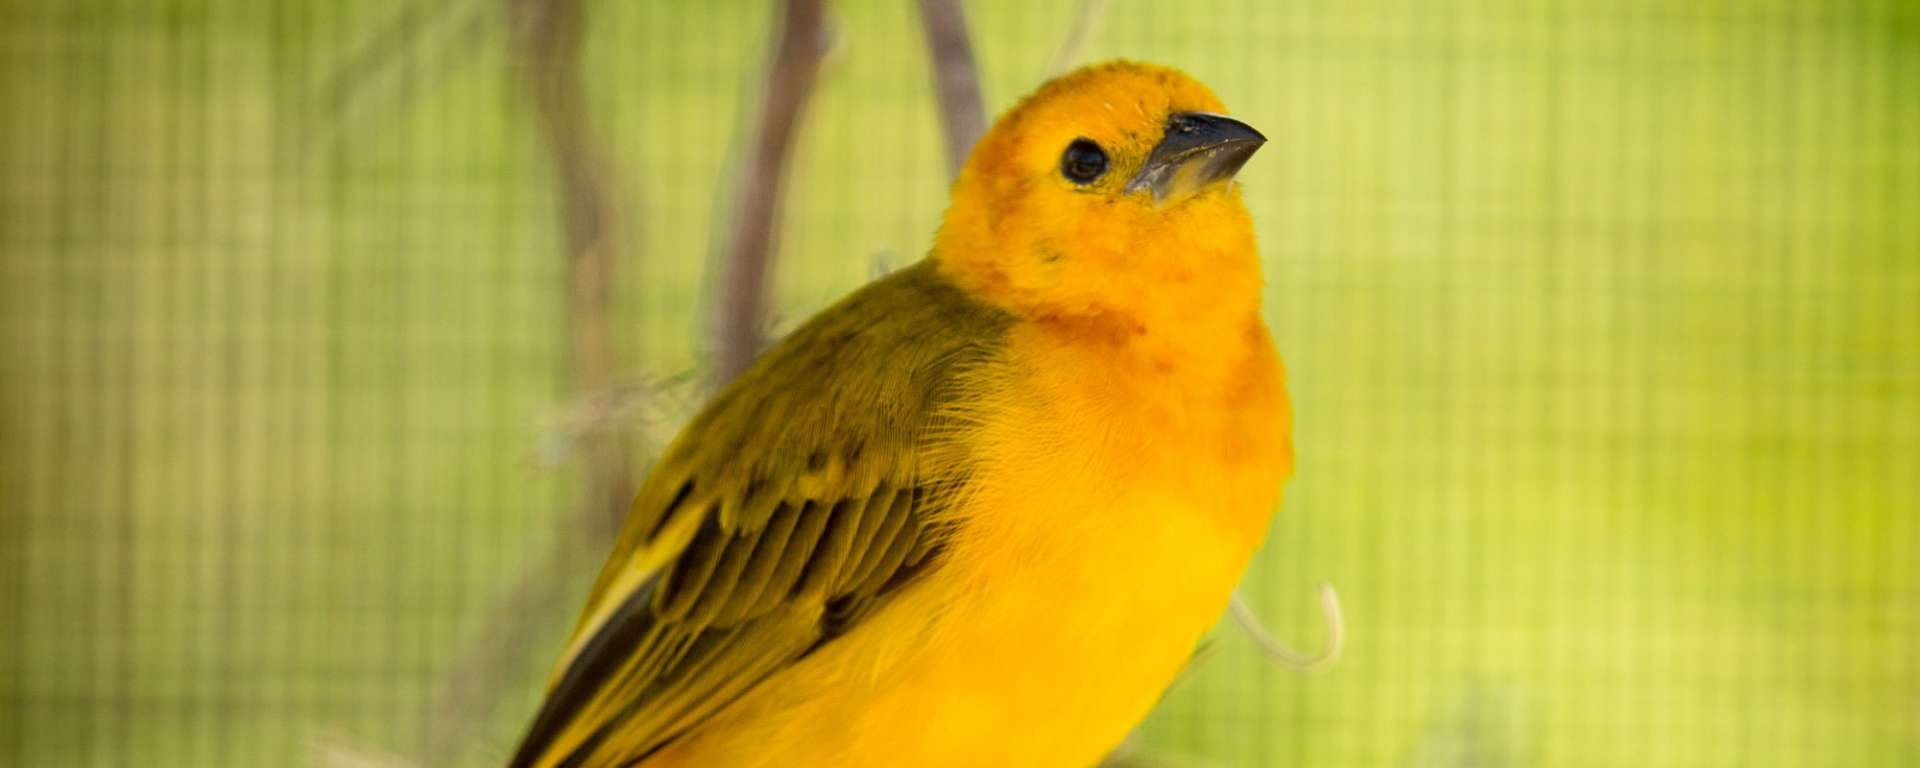 Taveta Golden Weaver by Steve Murdock